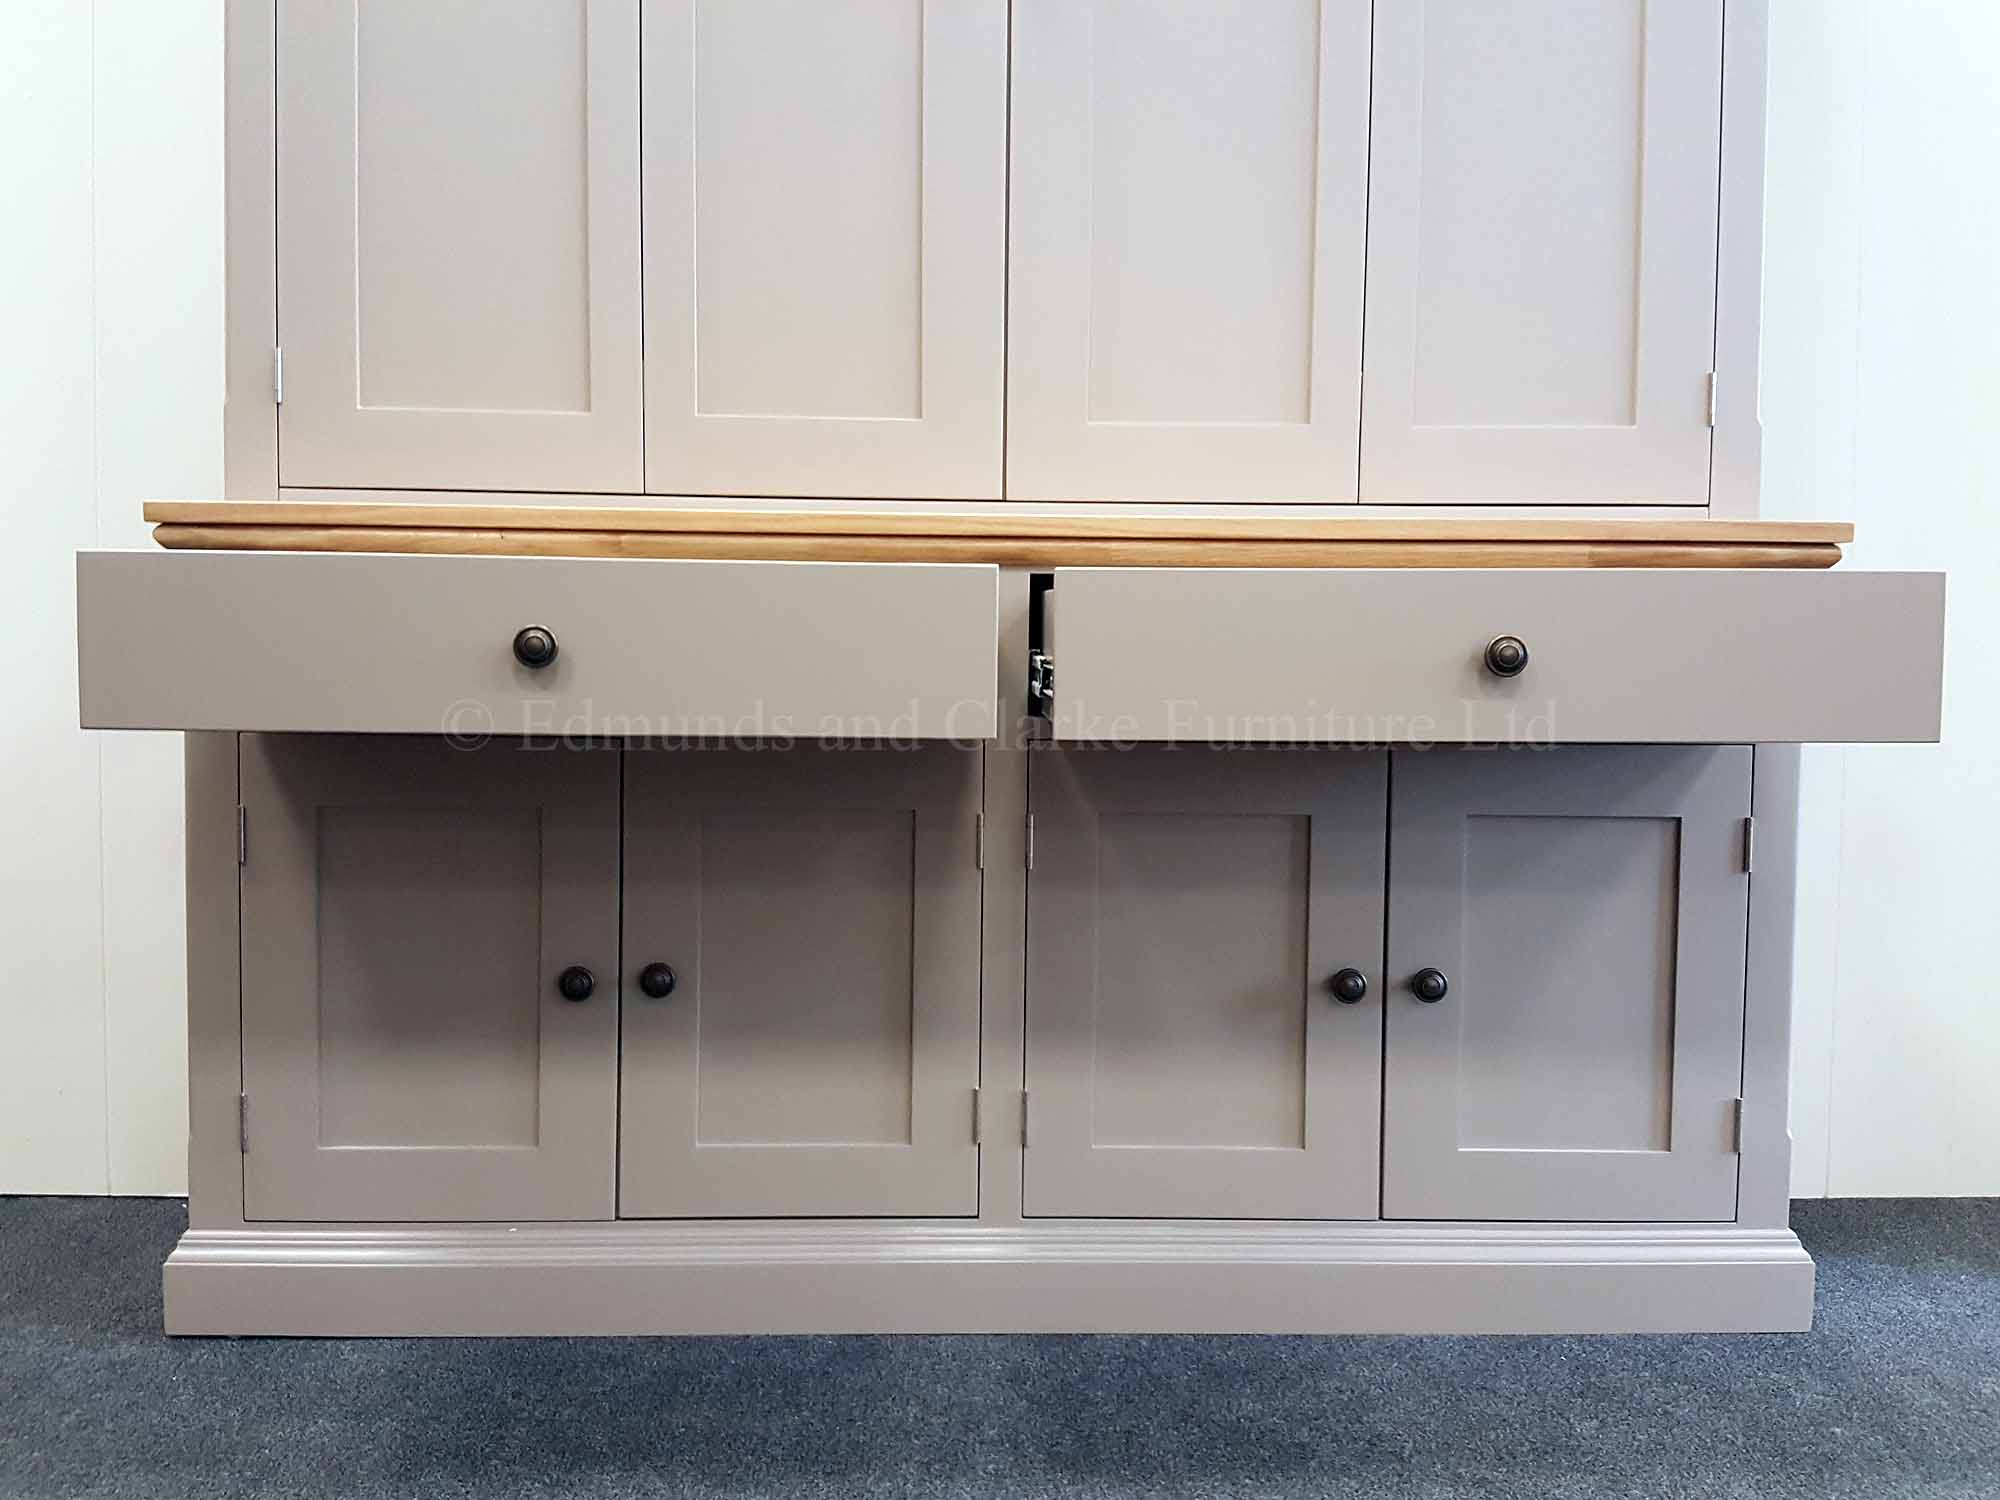 Edmunds flat screen tv cupboard with bifold doors in top section